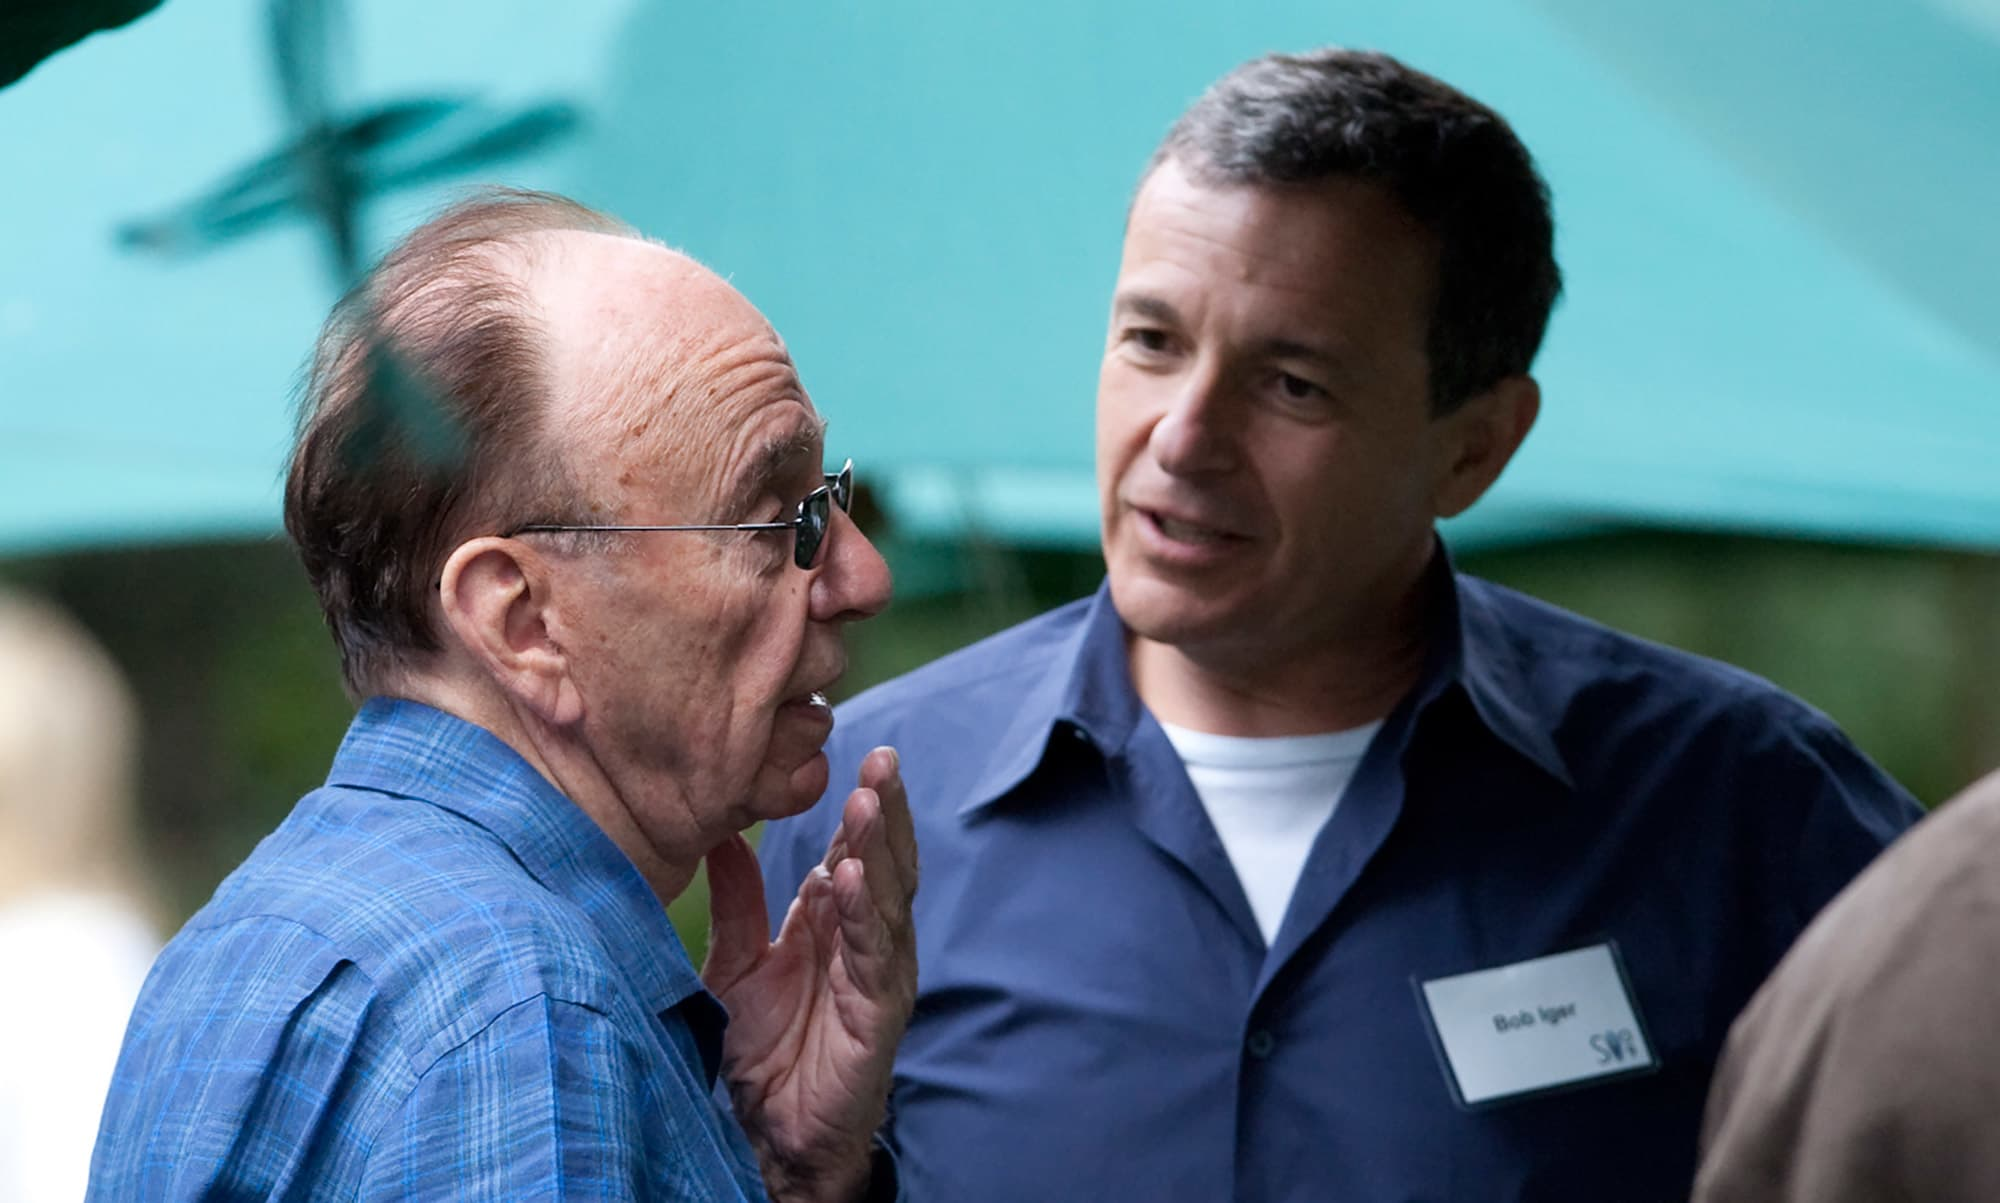 Rupert Murdoch, left, and Disney's Robert Iger at the annual Allen & Co.'s media summit in Sun Valley, Idaho.